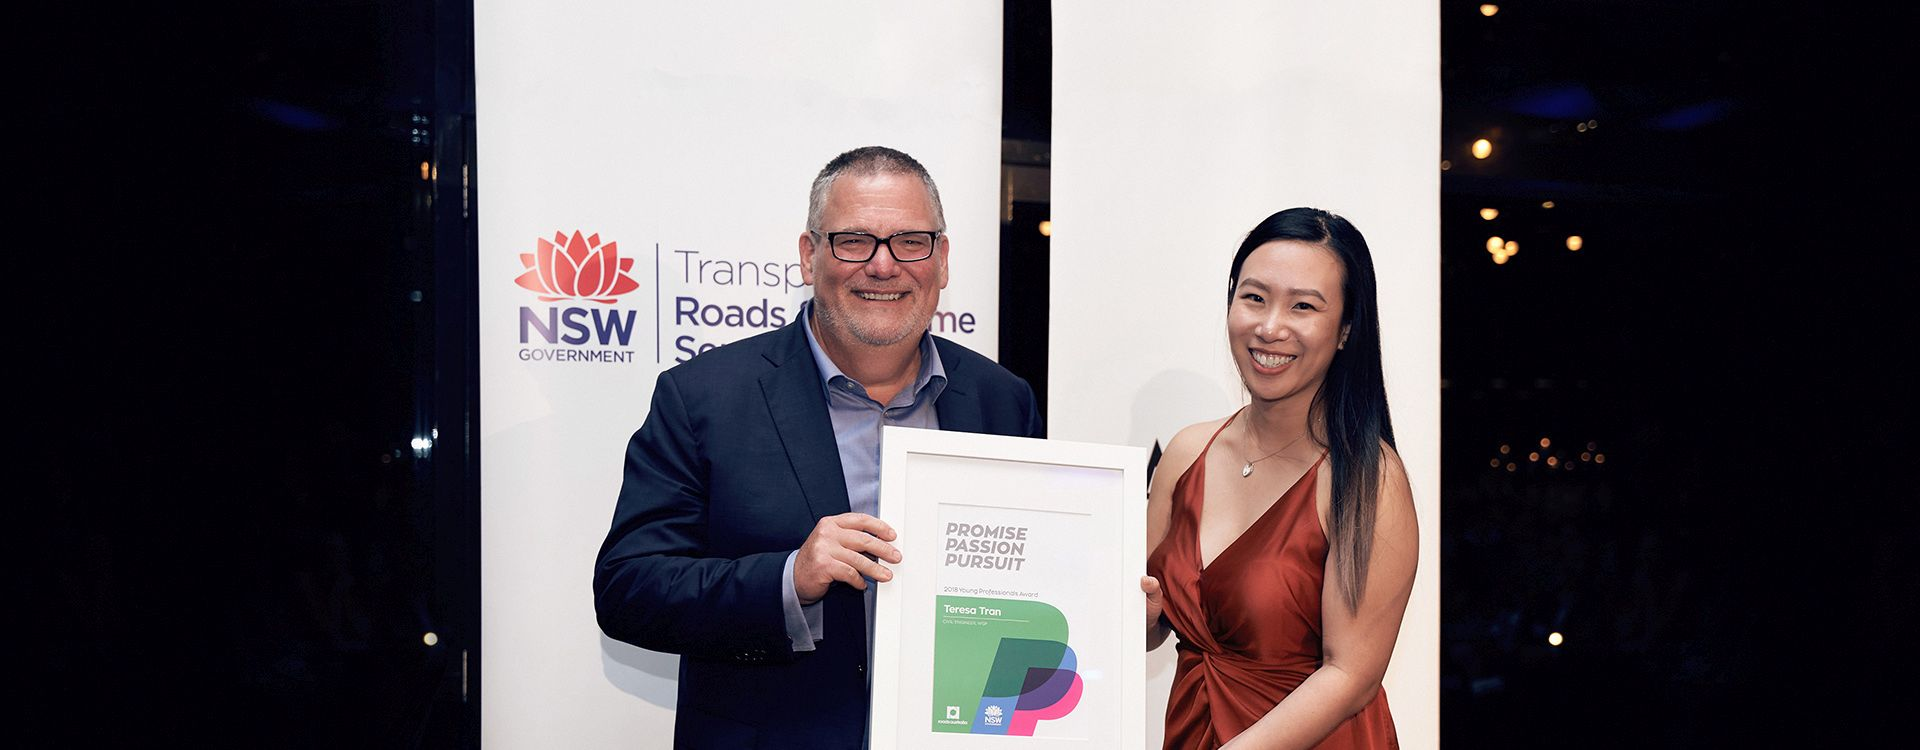 WSP's Teresa Tran, Civil Engineer in our Transport Infrastructure team, was named winner of the 2018 Roads Australia Young Professionals 'PPP' Award